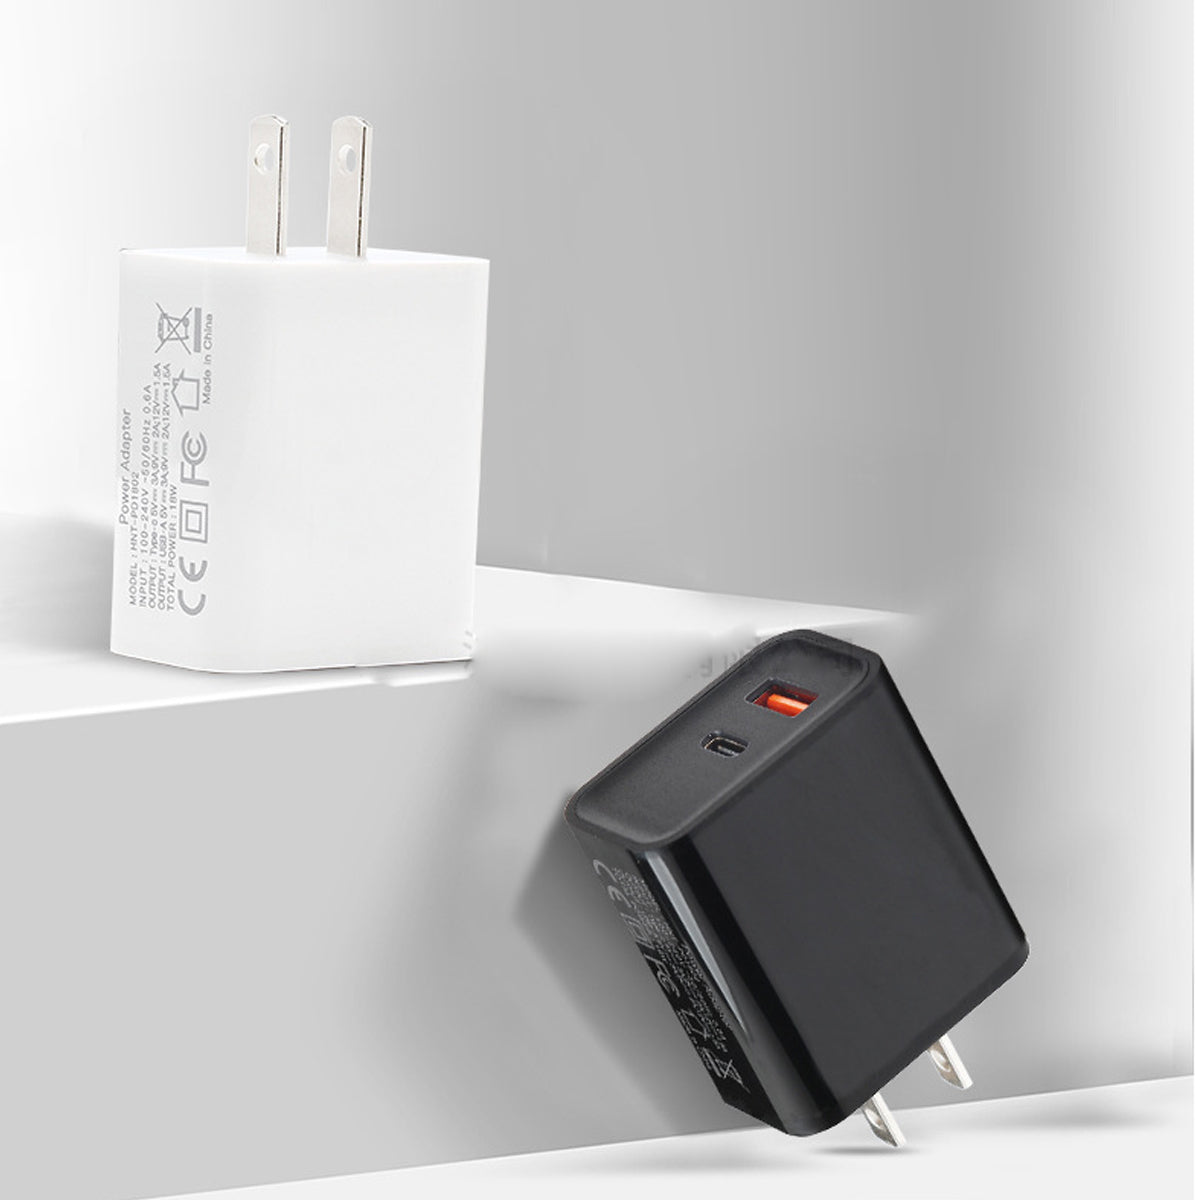 shopify-The Missing Charger Accessory For iPhone 12-2